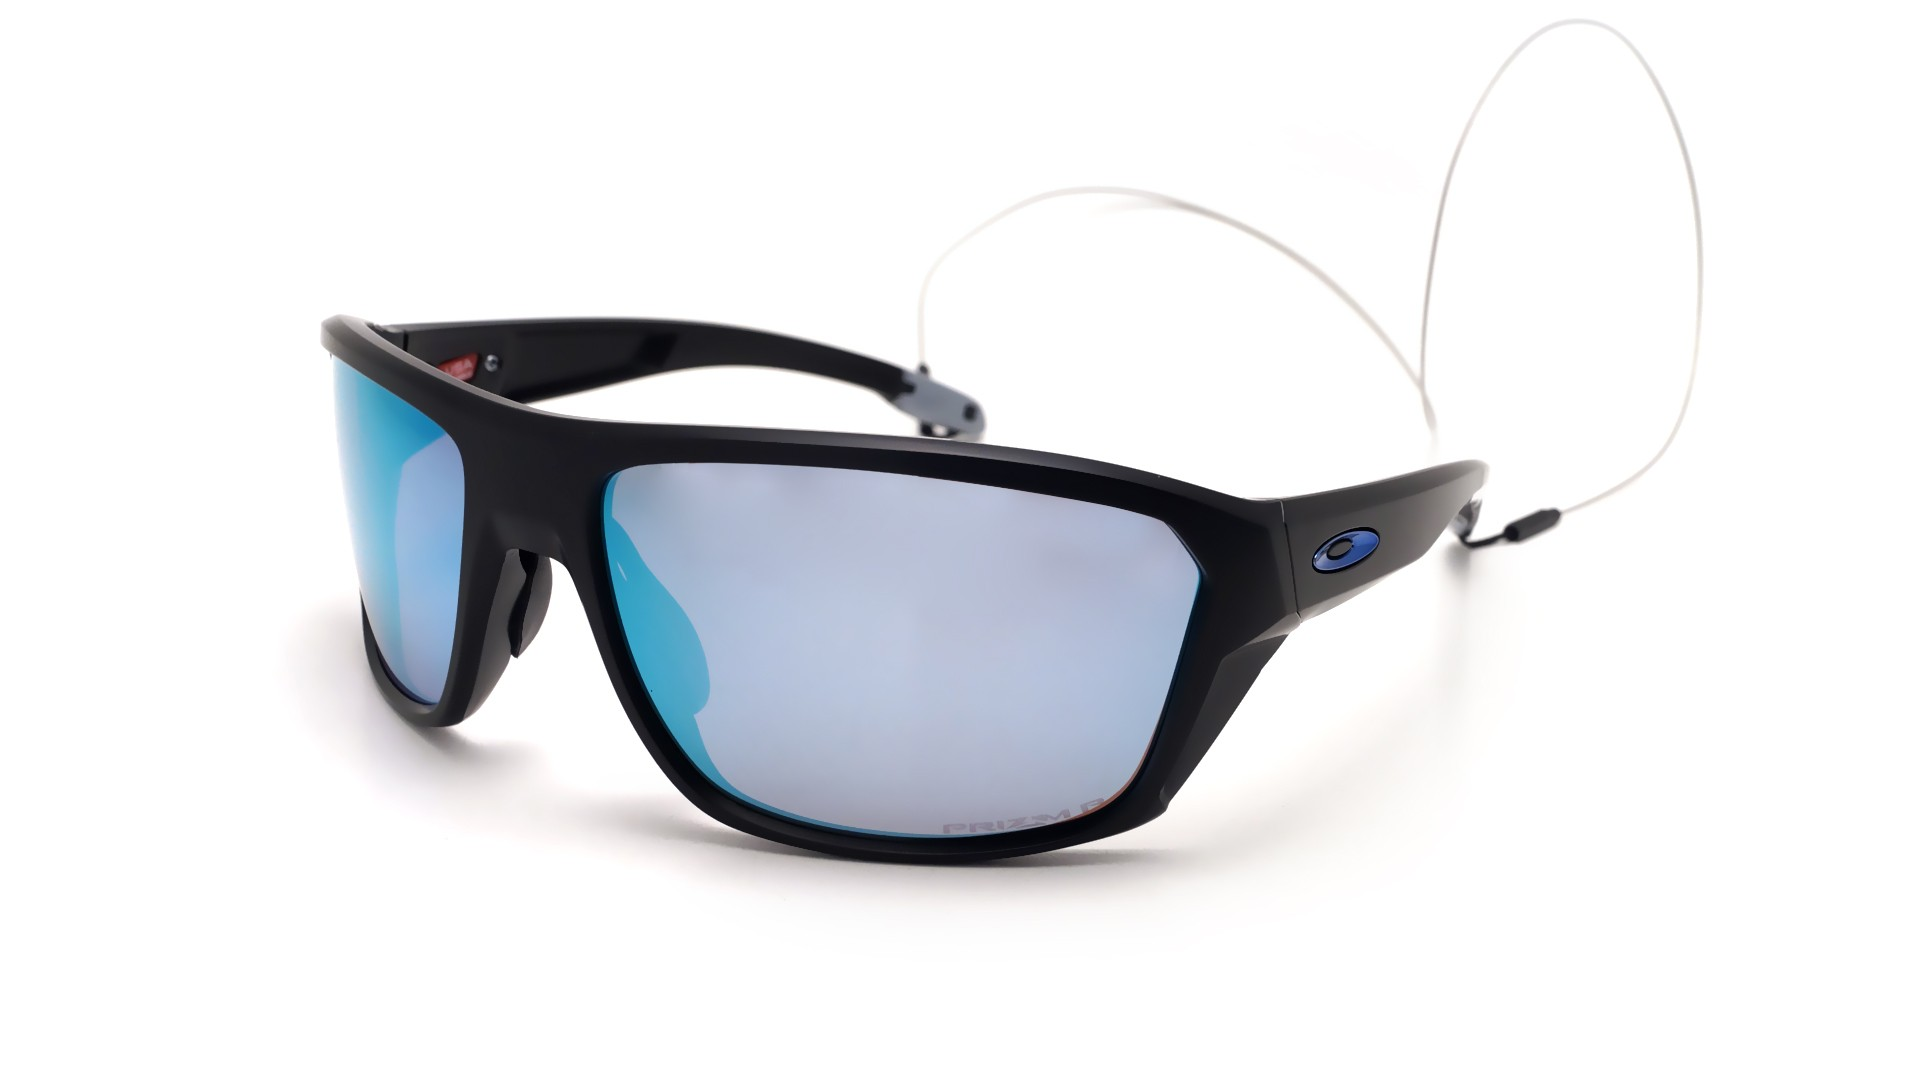 521ac625f12cc Sunglasses Oakley Split Shot Black Prizm deep water OO9416 06 64-17 Large  Polarized Flash